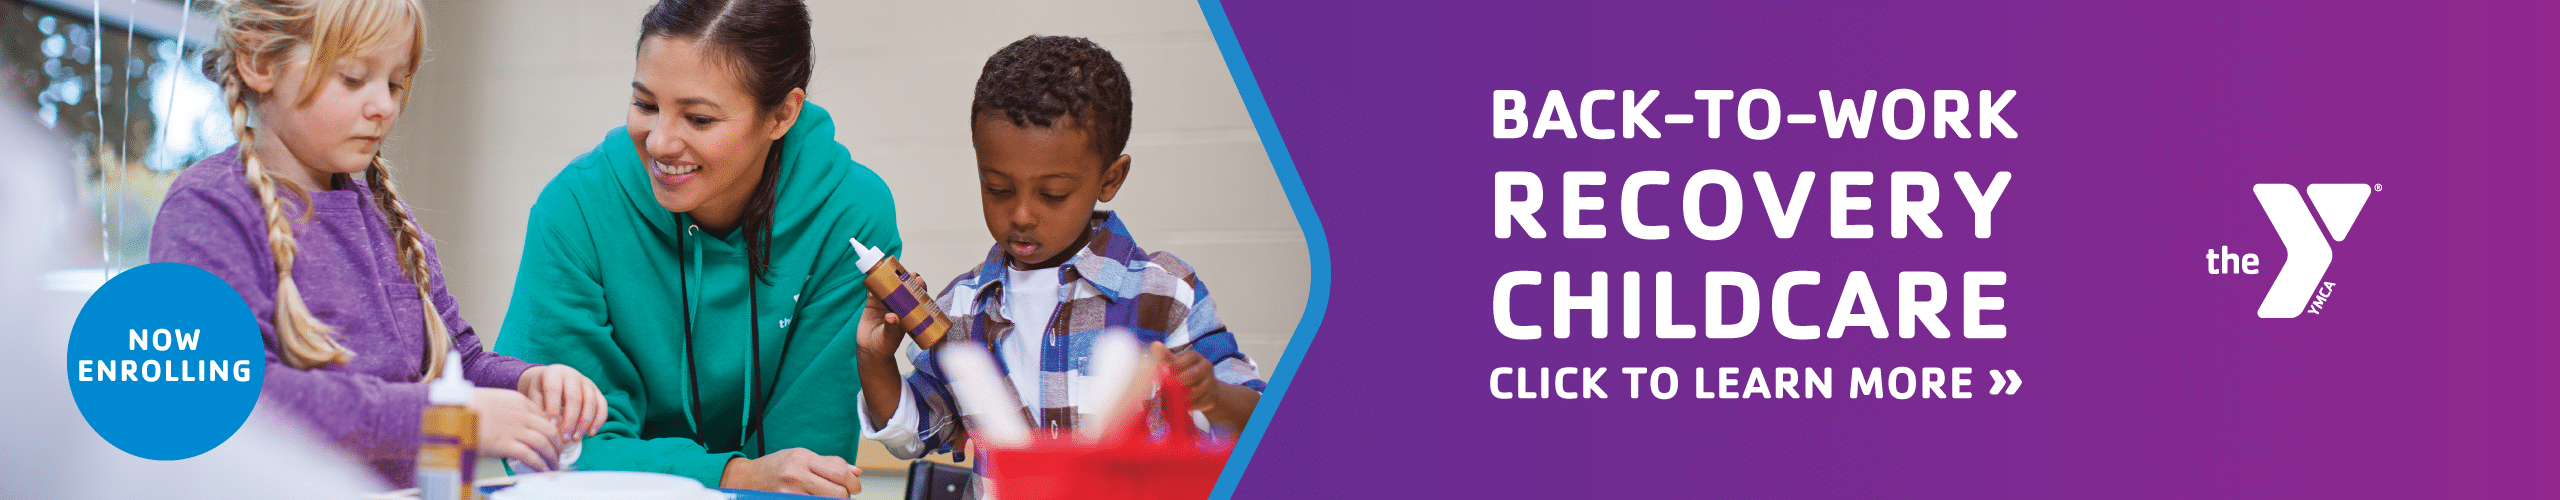 Back To Work Recovery Childcare Program is now enrolling